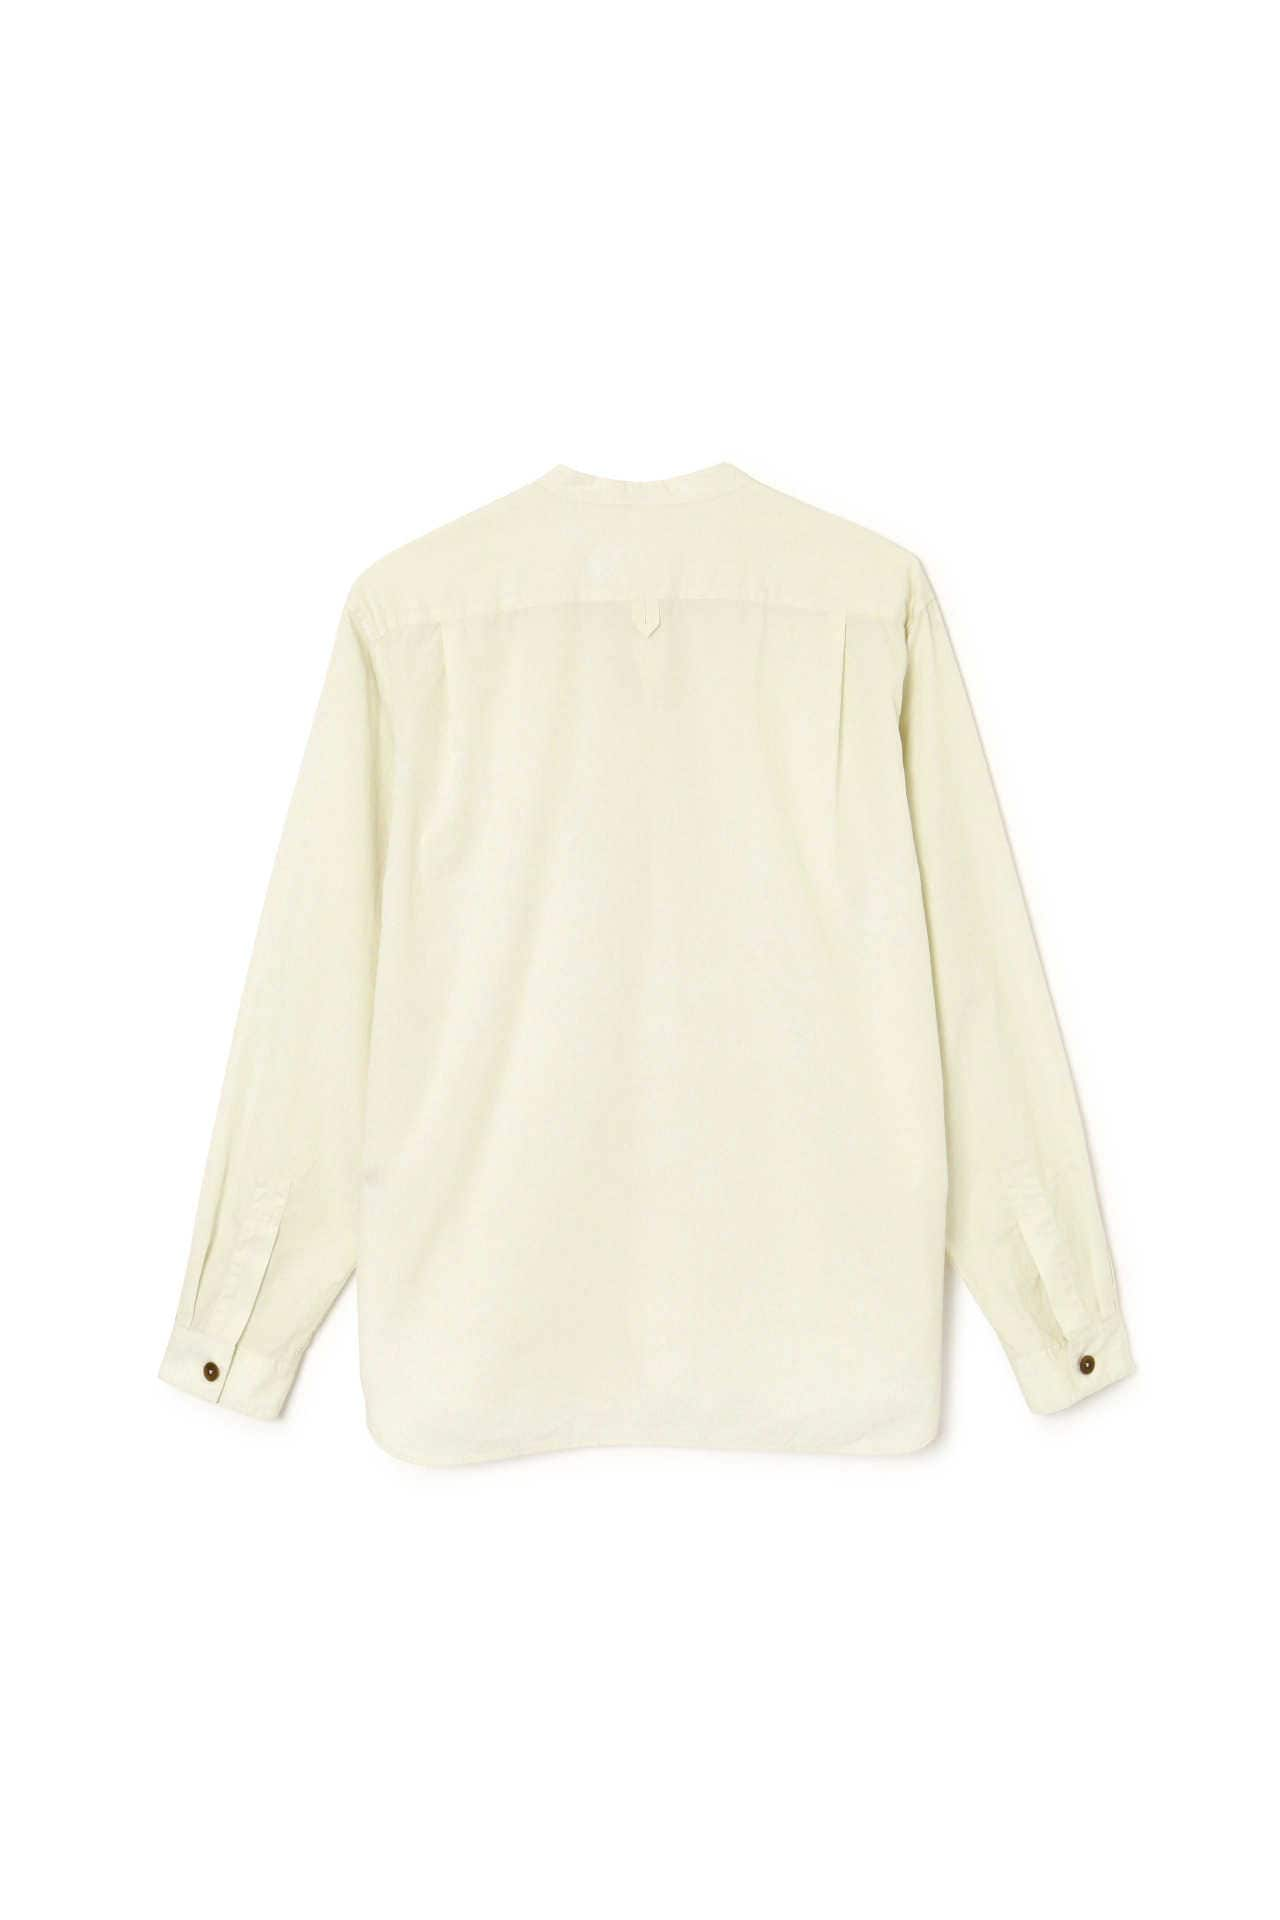 GARMENT DYE BASIC POPLIN(MHL SHOP限定)8